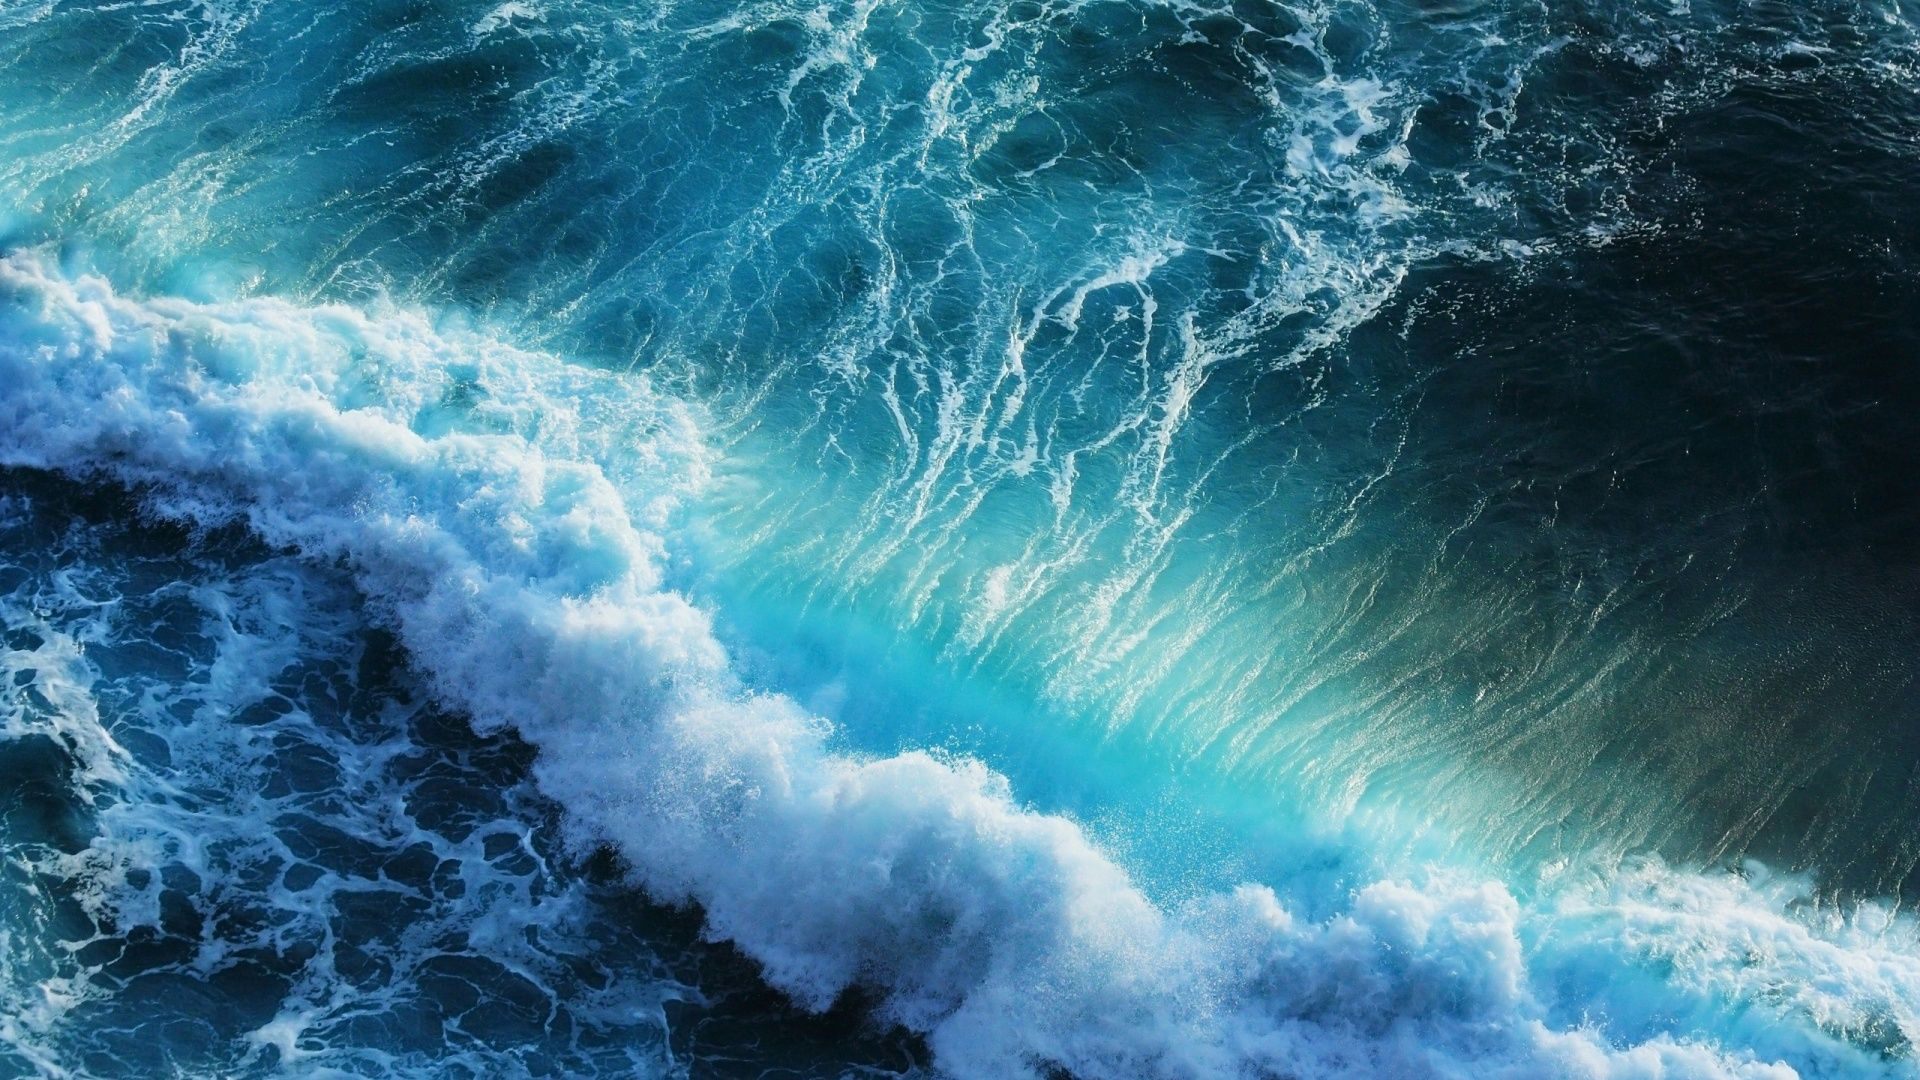 Artistic Wallpapers Phone With High Definition Resolution Flower Waves Wallpaper Ocean Wallpaper Ocean Waves